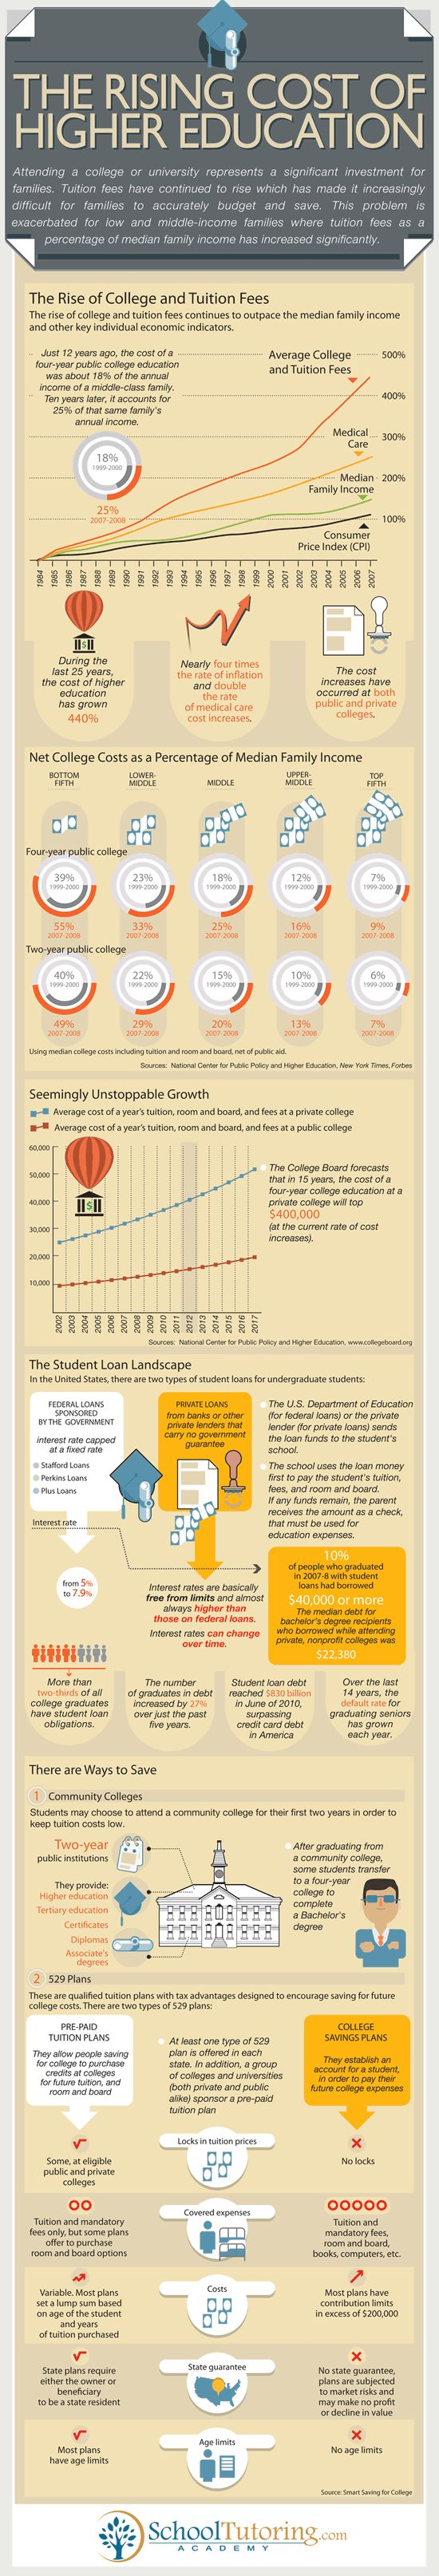 The rising cost of higher education [infographic]